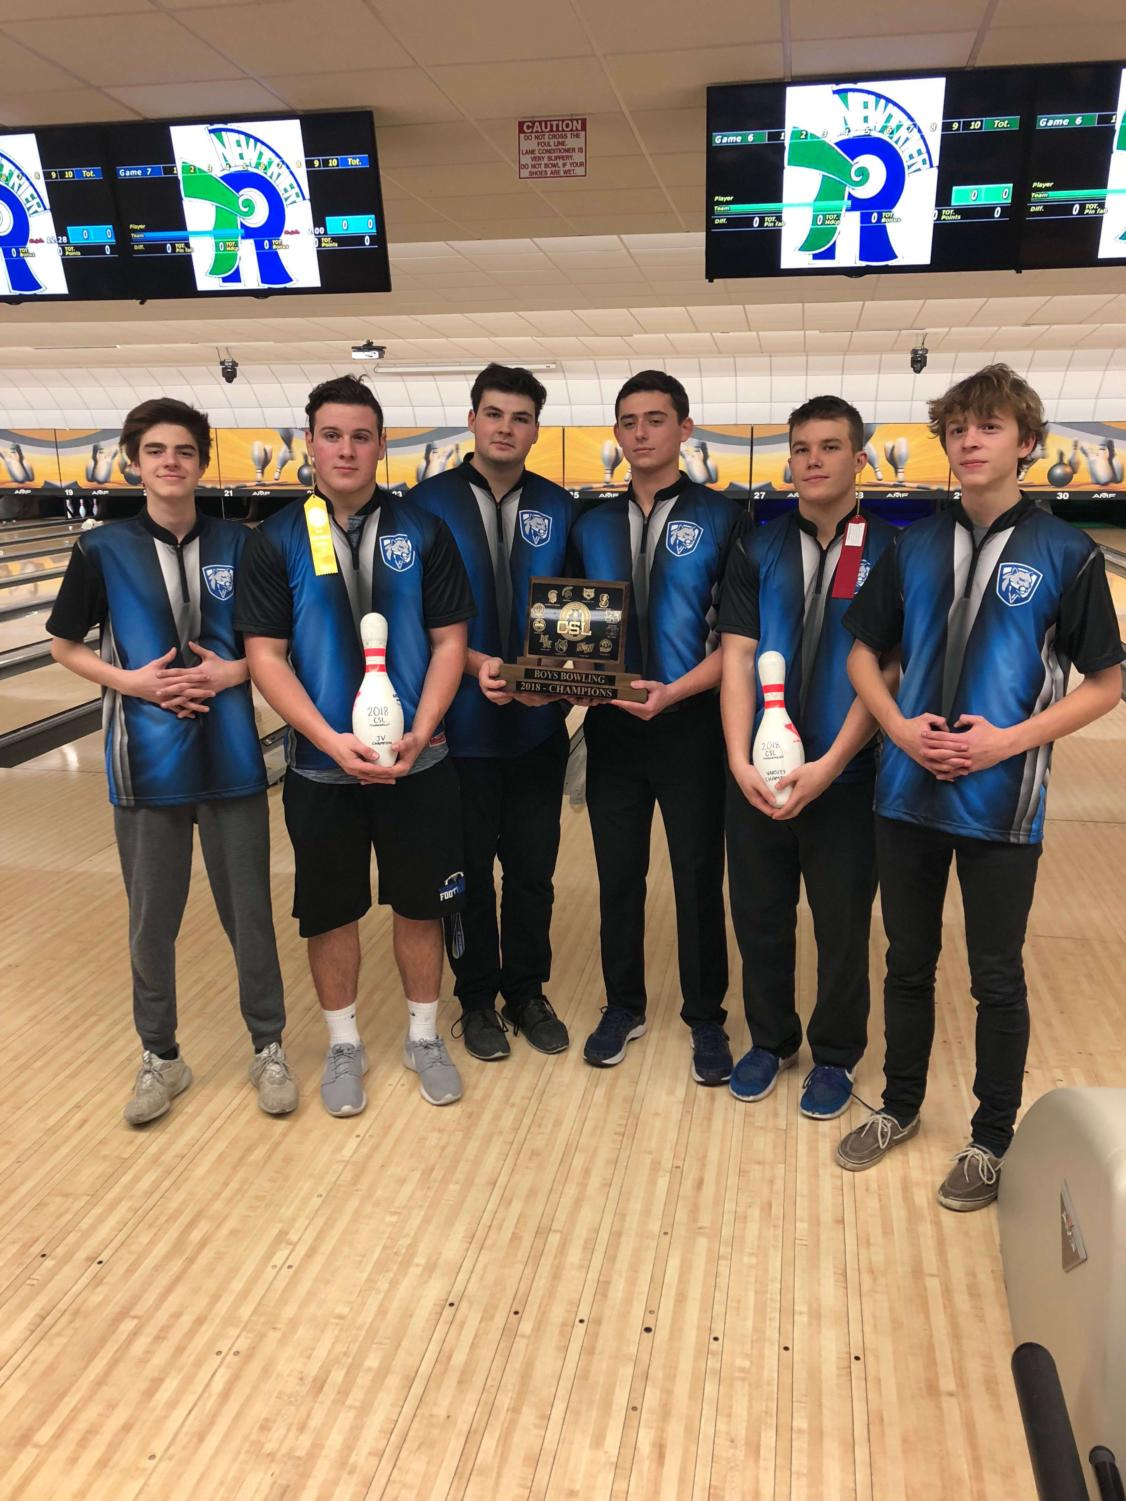 Seniors Ben Kushnir, Derek Jarrell, Nick McNamara, Logan Coty, Jake Morris, and Cooper Guillaume are holding their first place conference trophy.